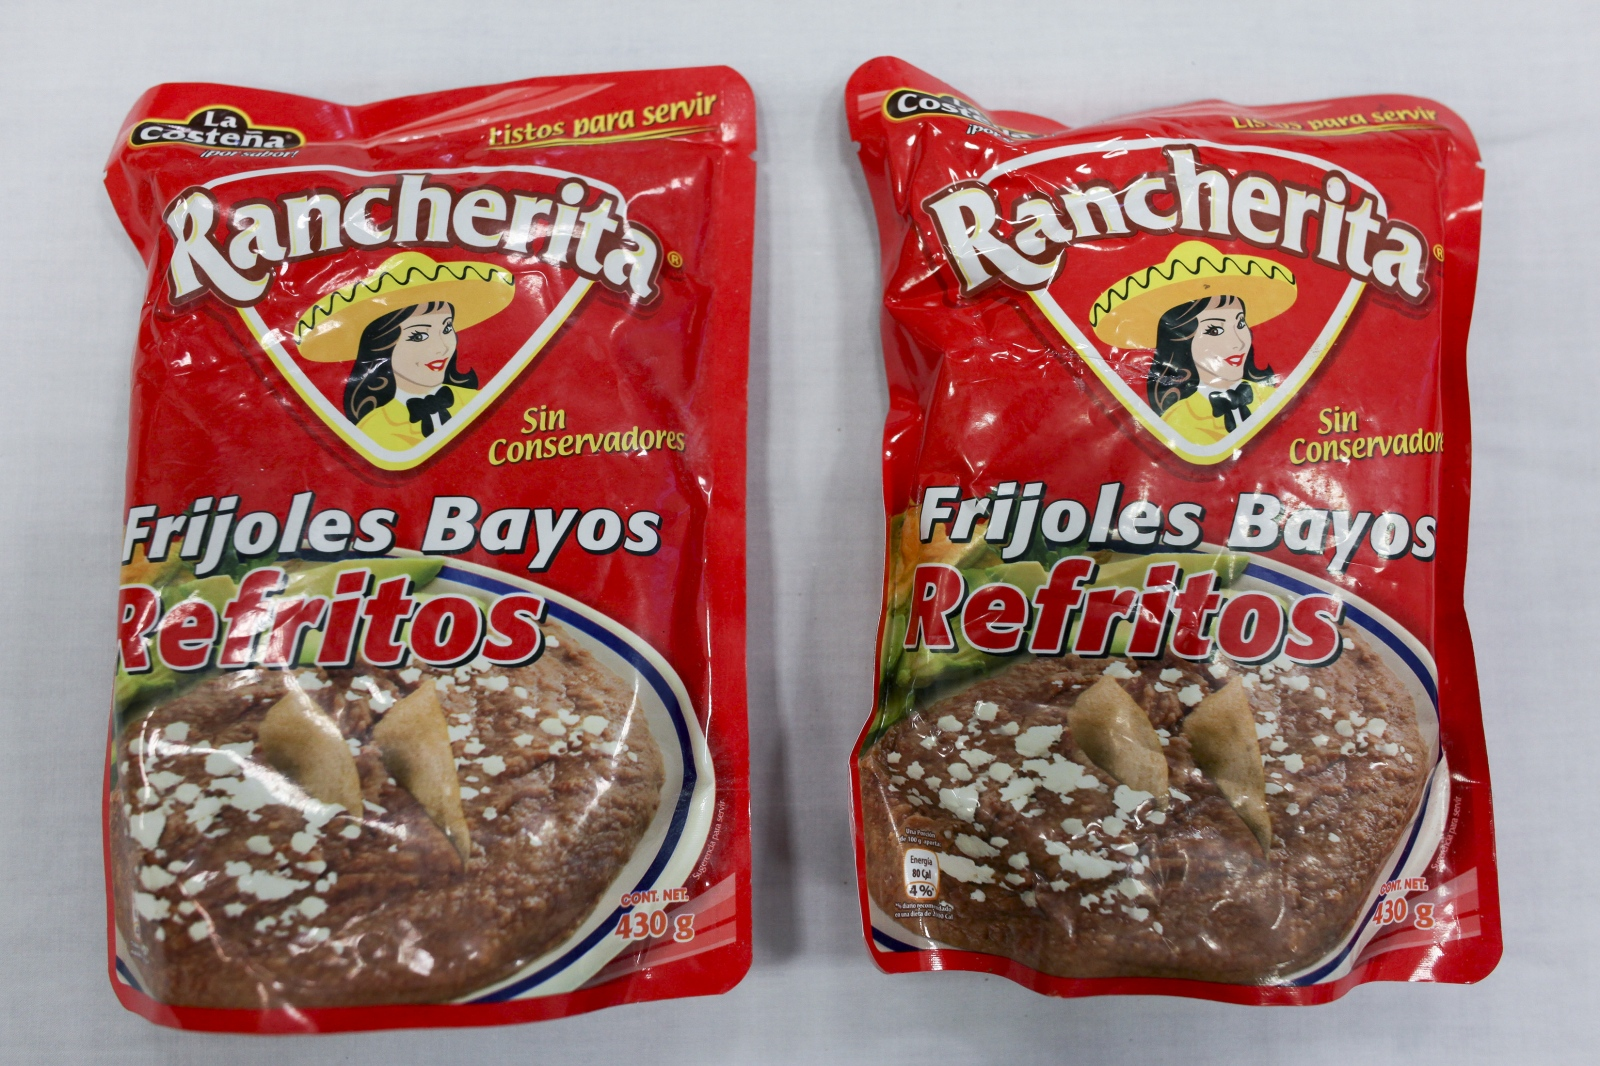 Refried beans, along with other packaged foods are found in the backpack of deceased Mario Velazquez, 32, a migrant border crosser at the Pima County Office of the Medical Examiner on May 22, 2013, in Tucson, Ariz.